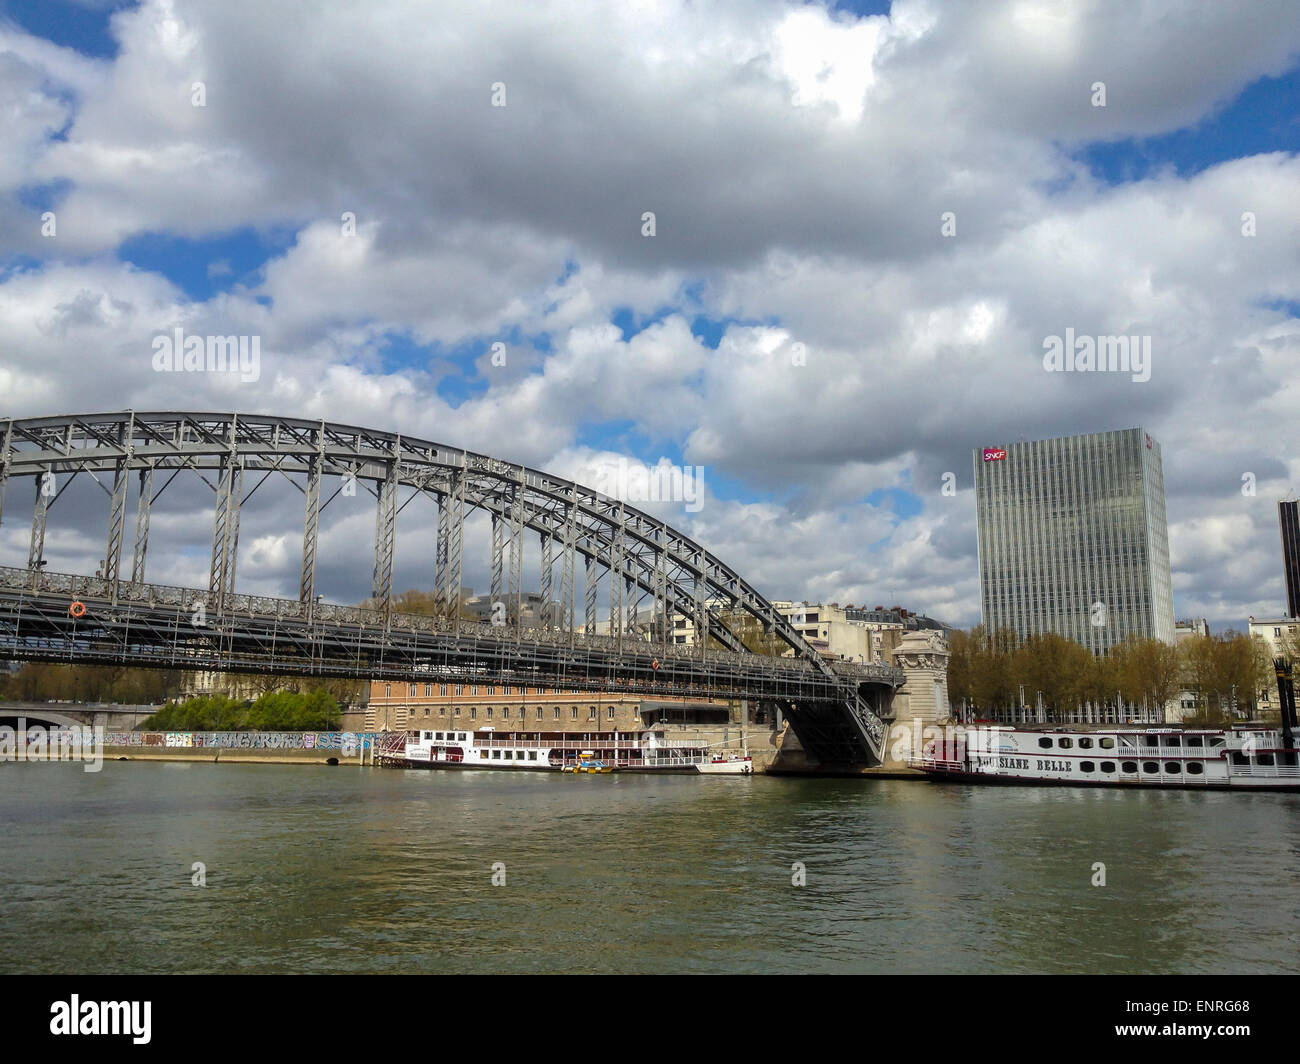 Paris, Bridges, France. Urban Scenics, Seine River with Austerlitz Bridge - Stock Image